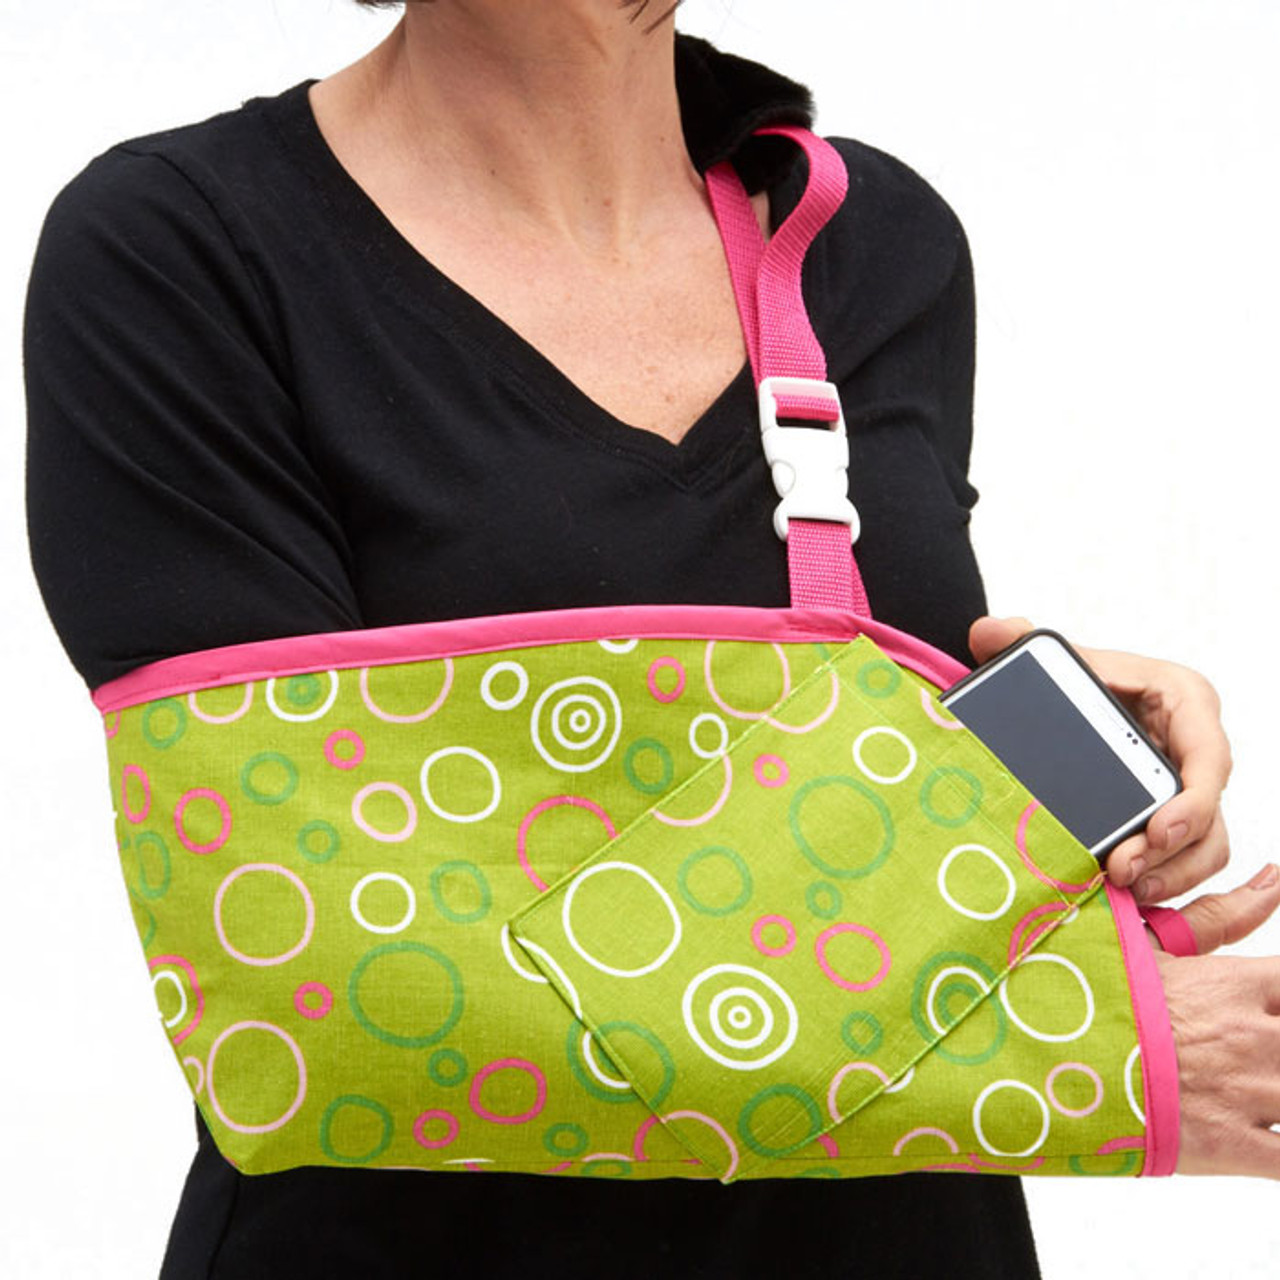 8654c18e352f90 Fashionable and Functional Arm Slings in Fizz Fabric